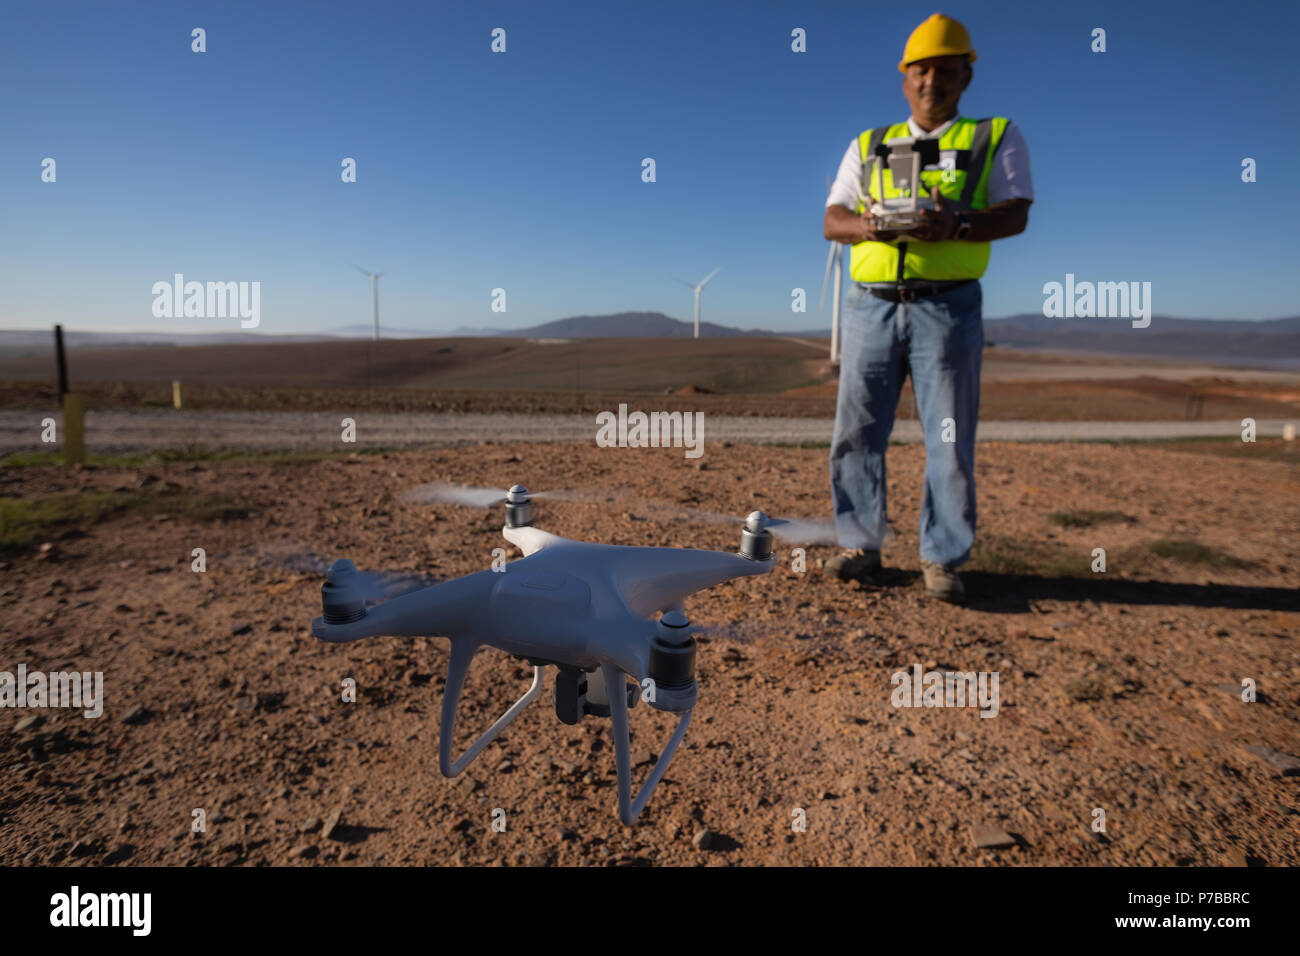 Engineer controlling a drone with a controller - Stock Image